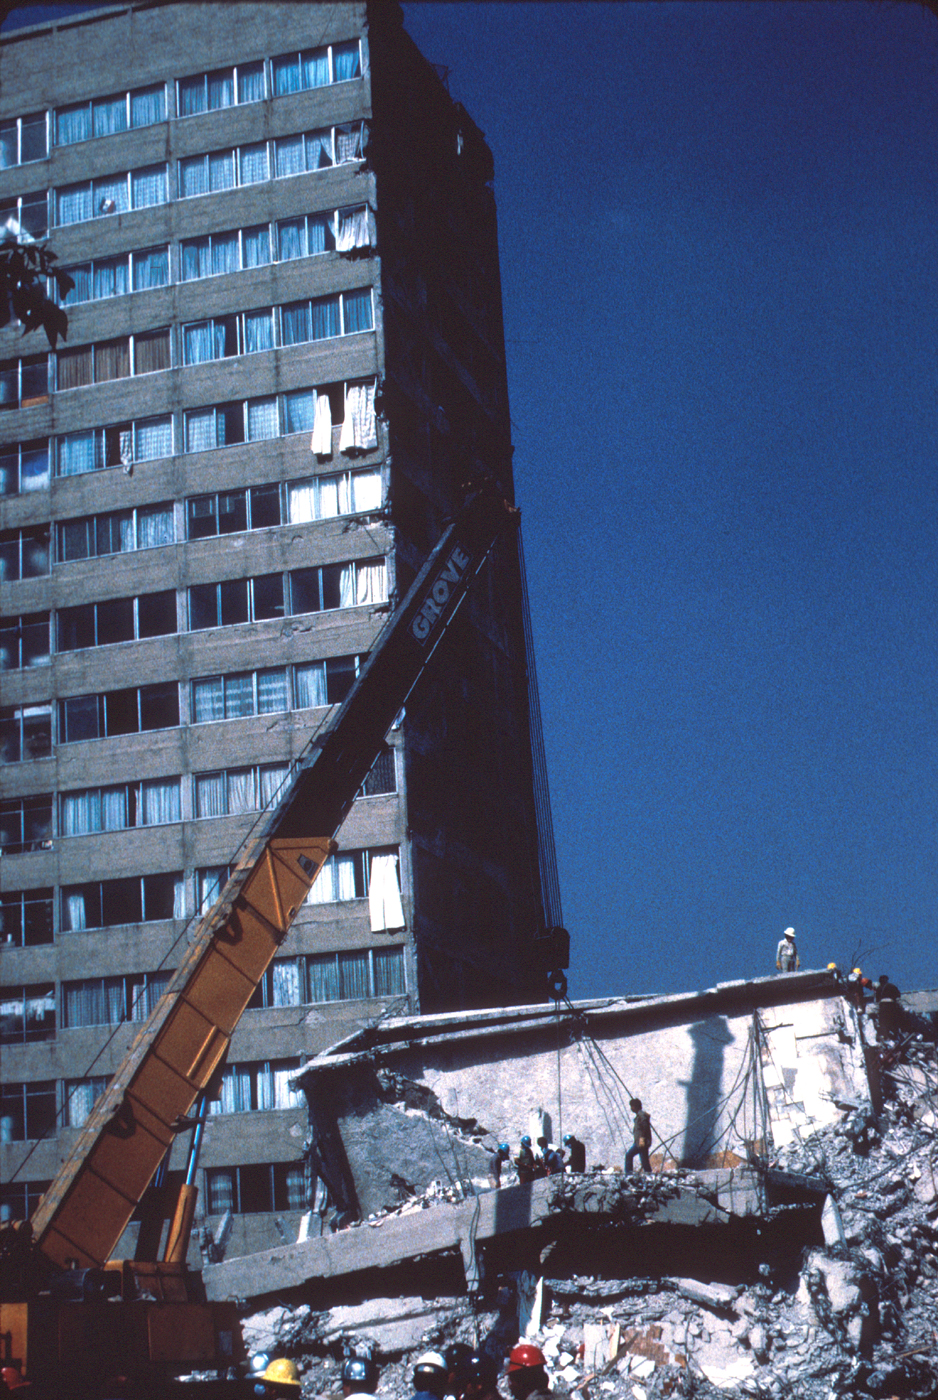 Collapsed middle wing of the building looking west (Taken from USGS Photographic Library, 1985)